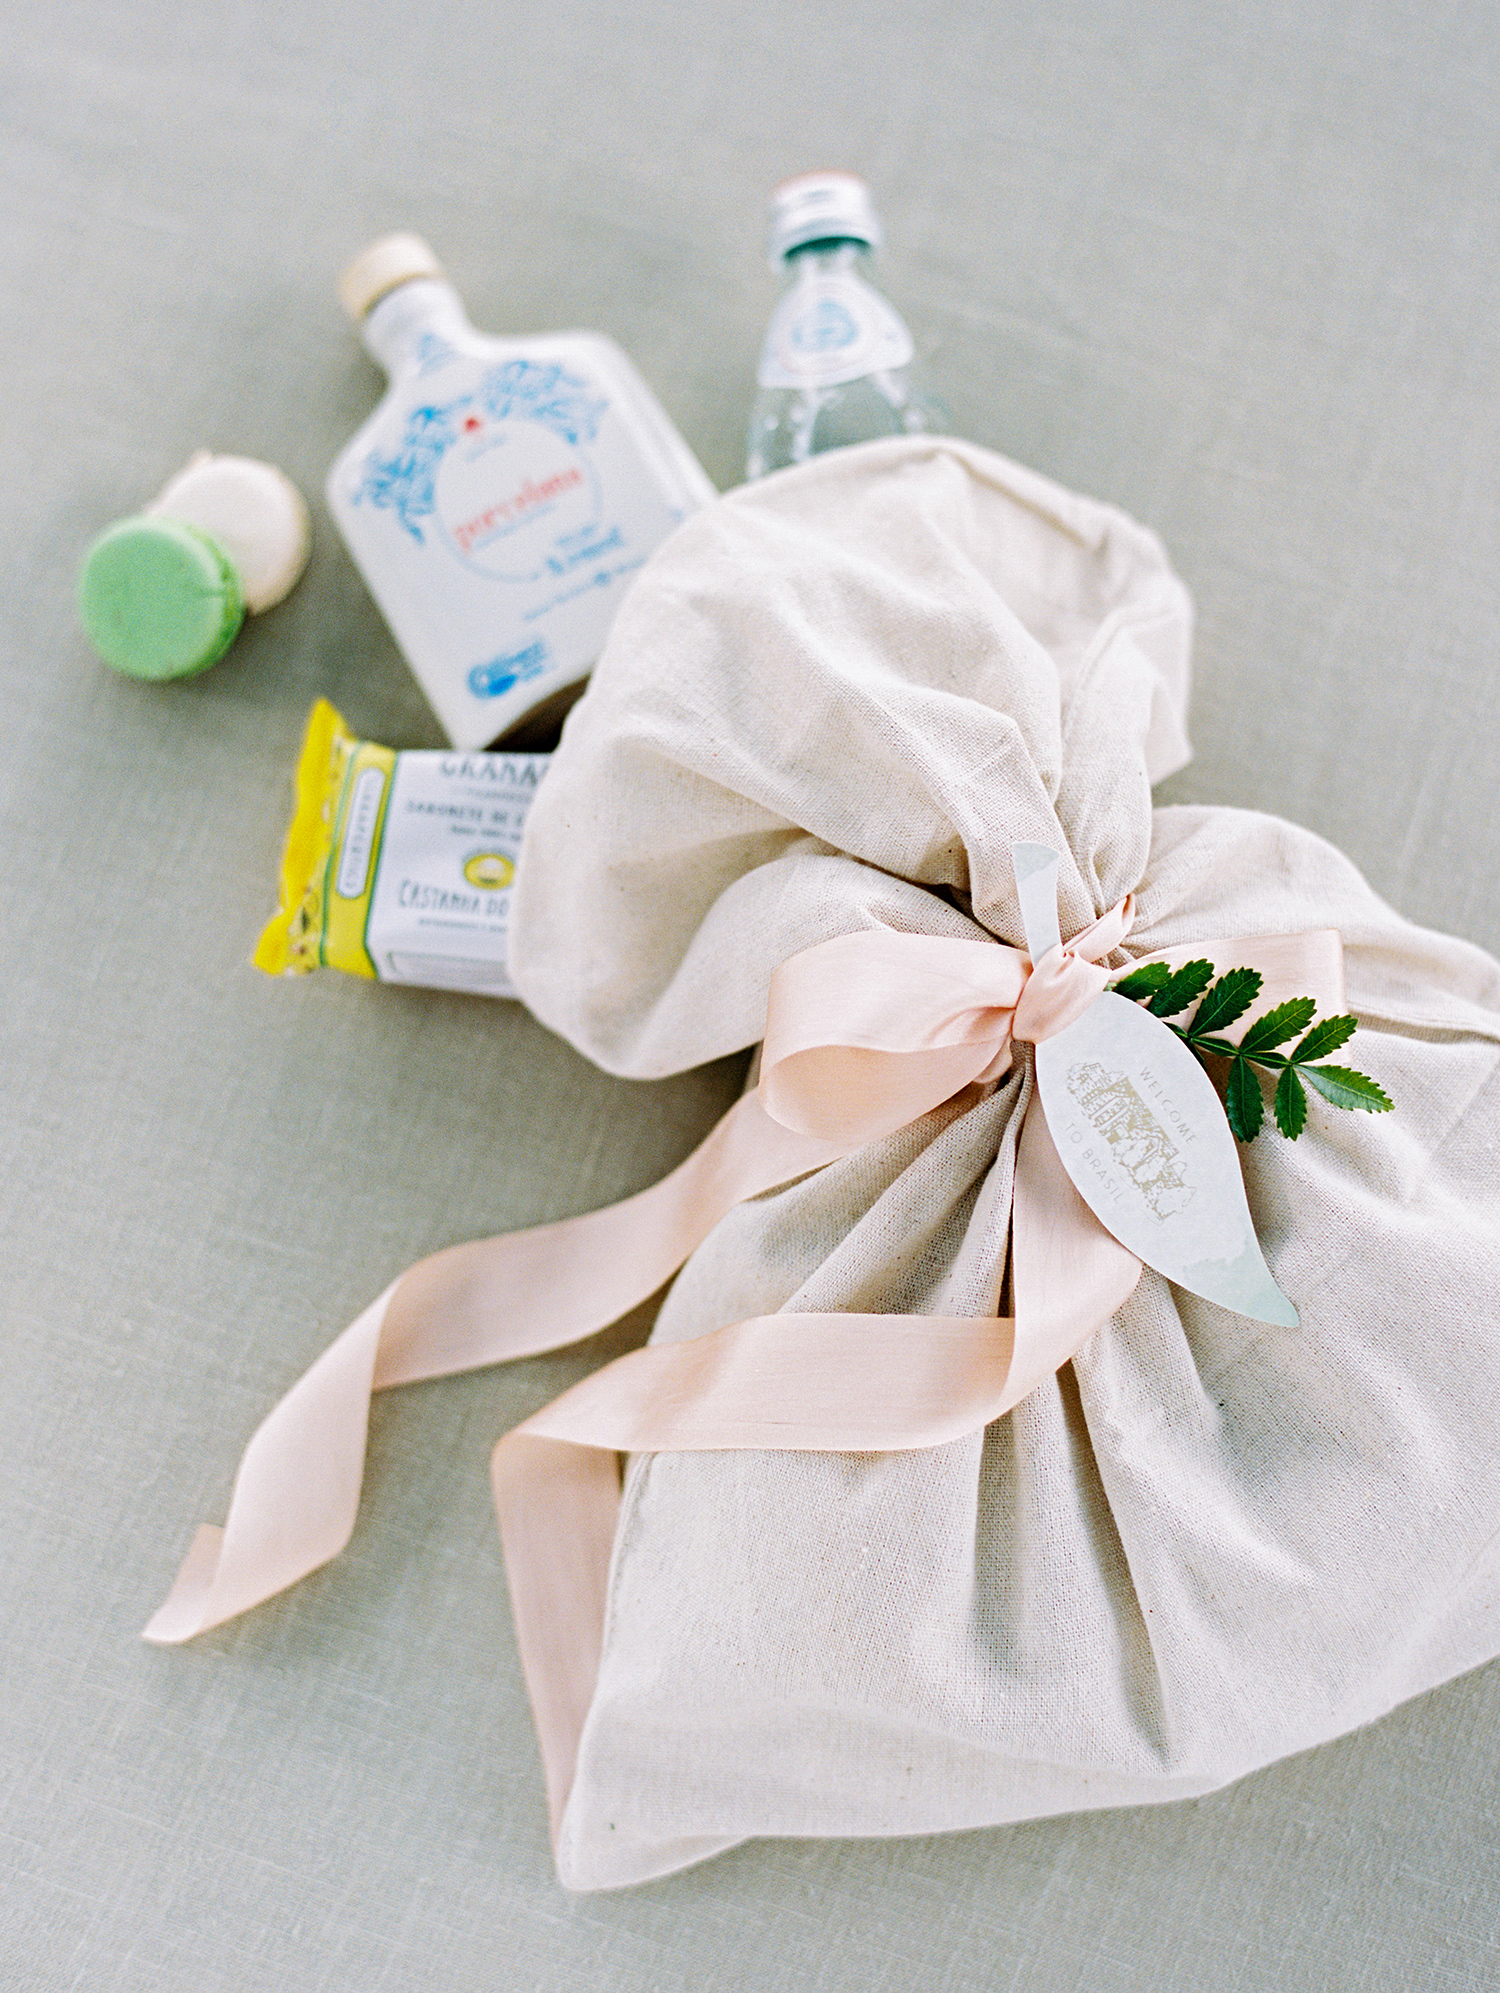 amanda alex wedding welcome bags